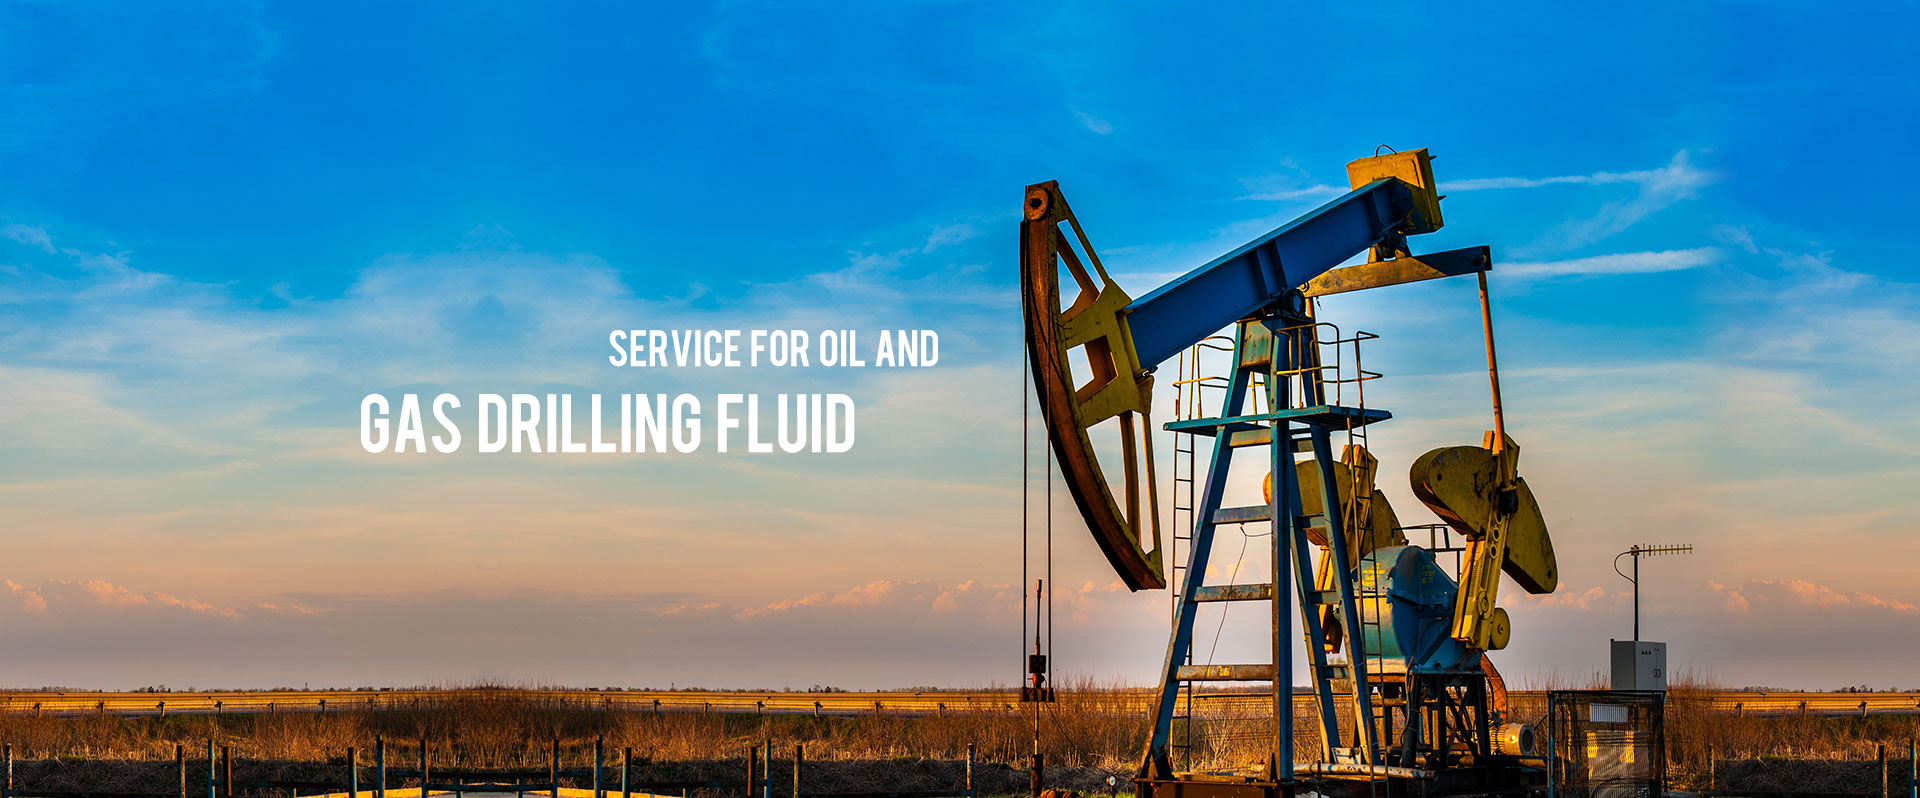 oil and gas drilling service